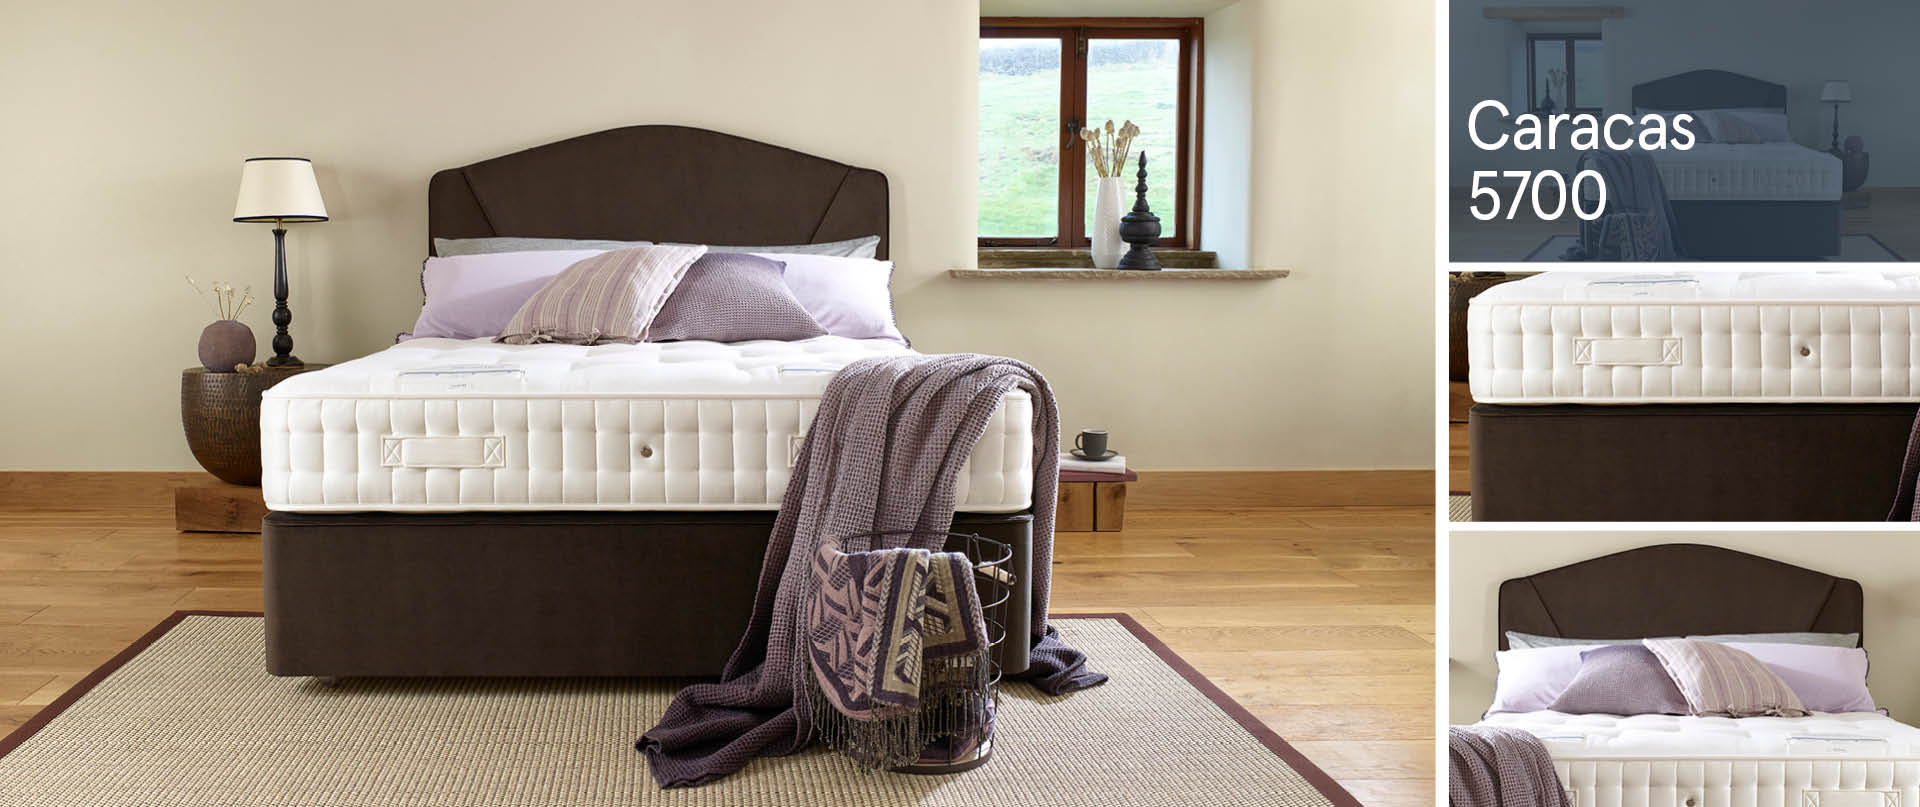 Caracas 5700 Divan Beds Ranges